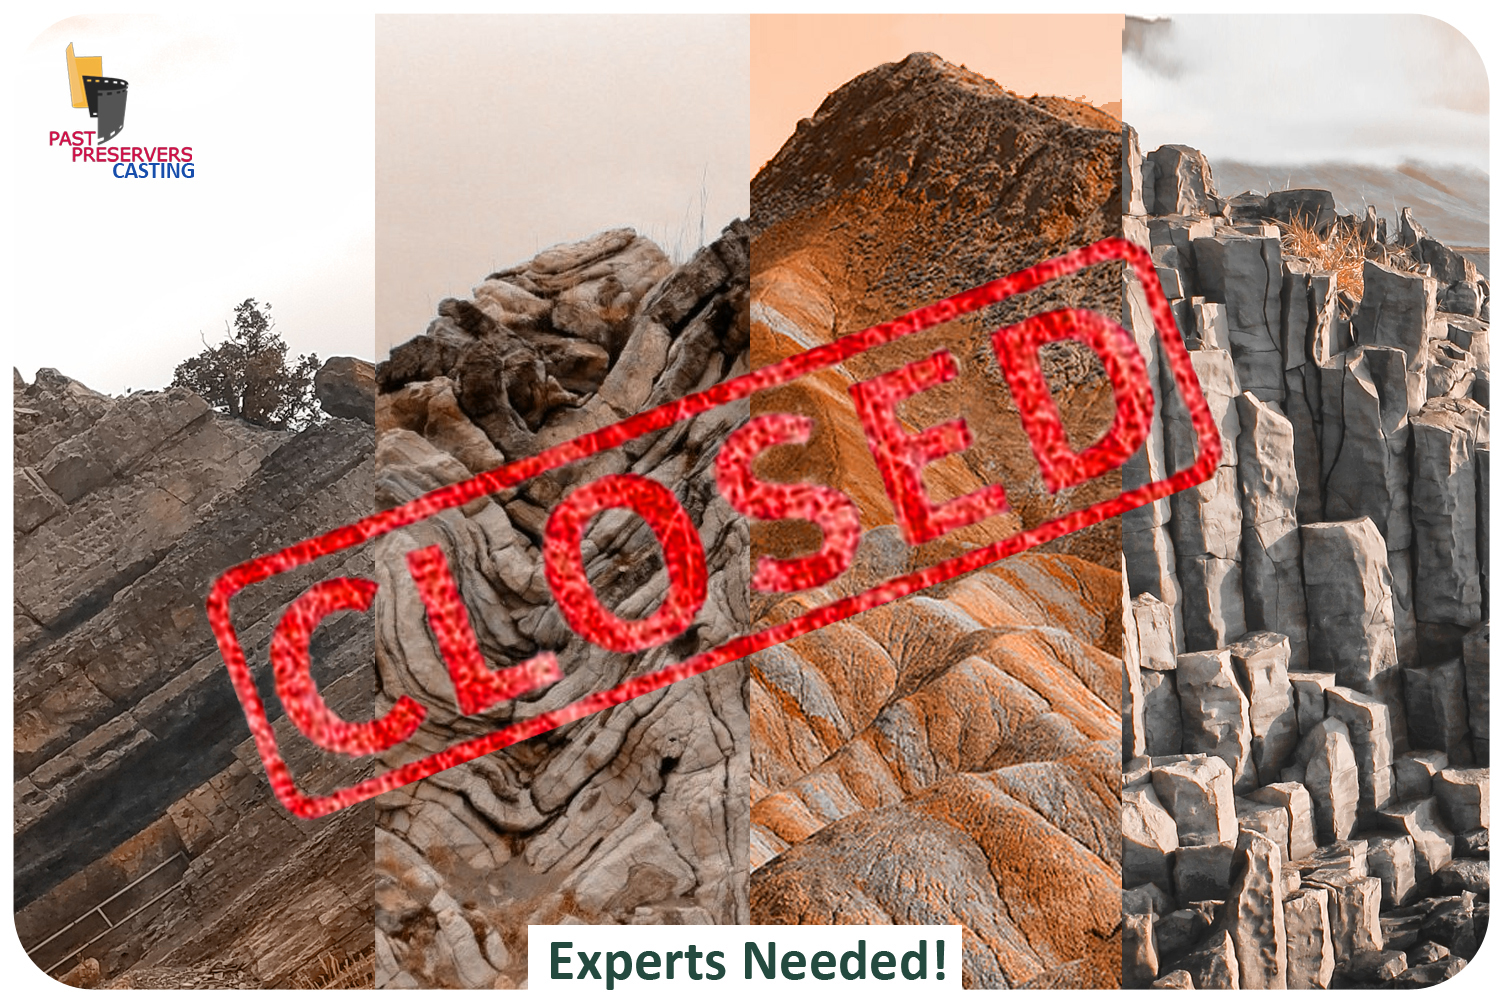 Expert Geologists Needed!